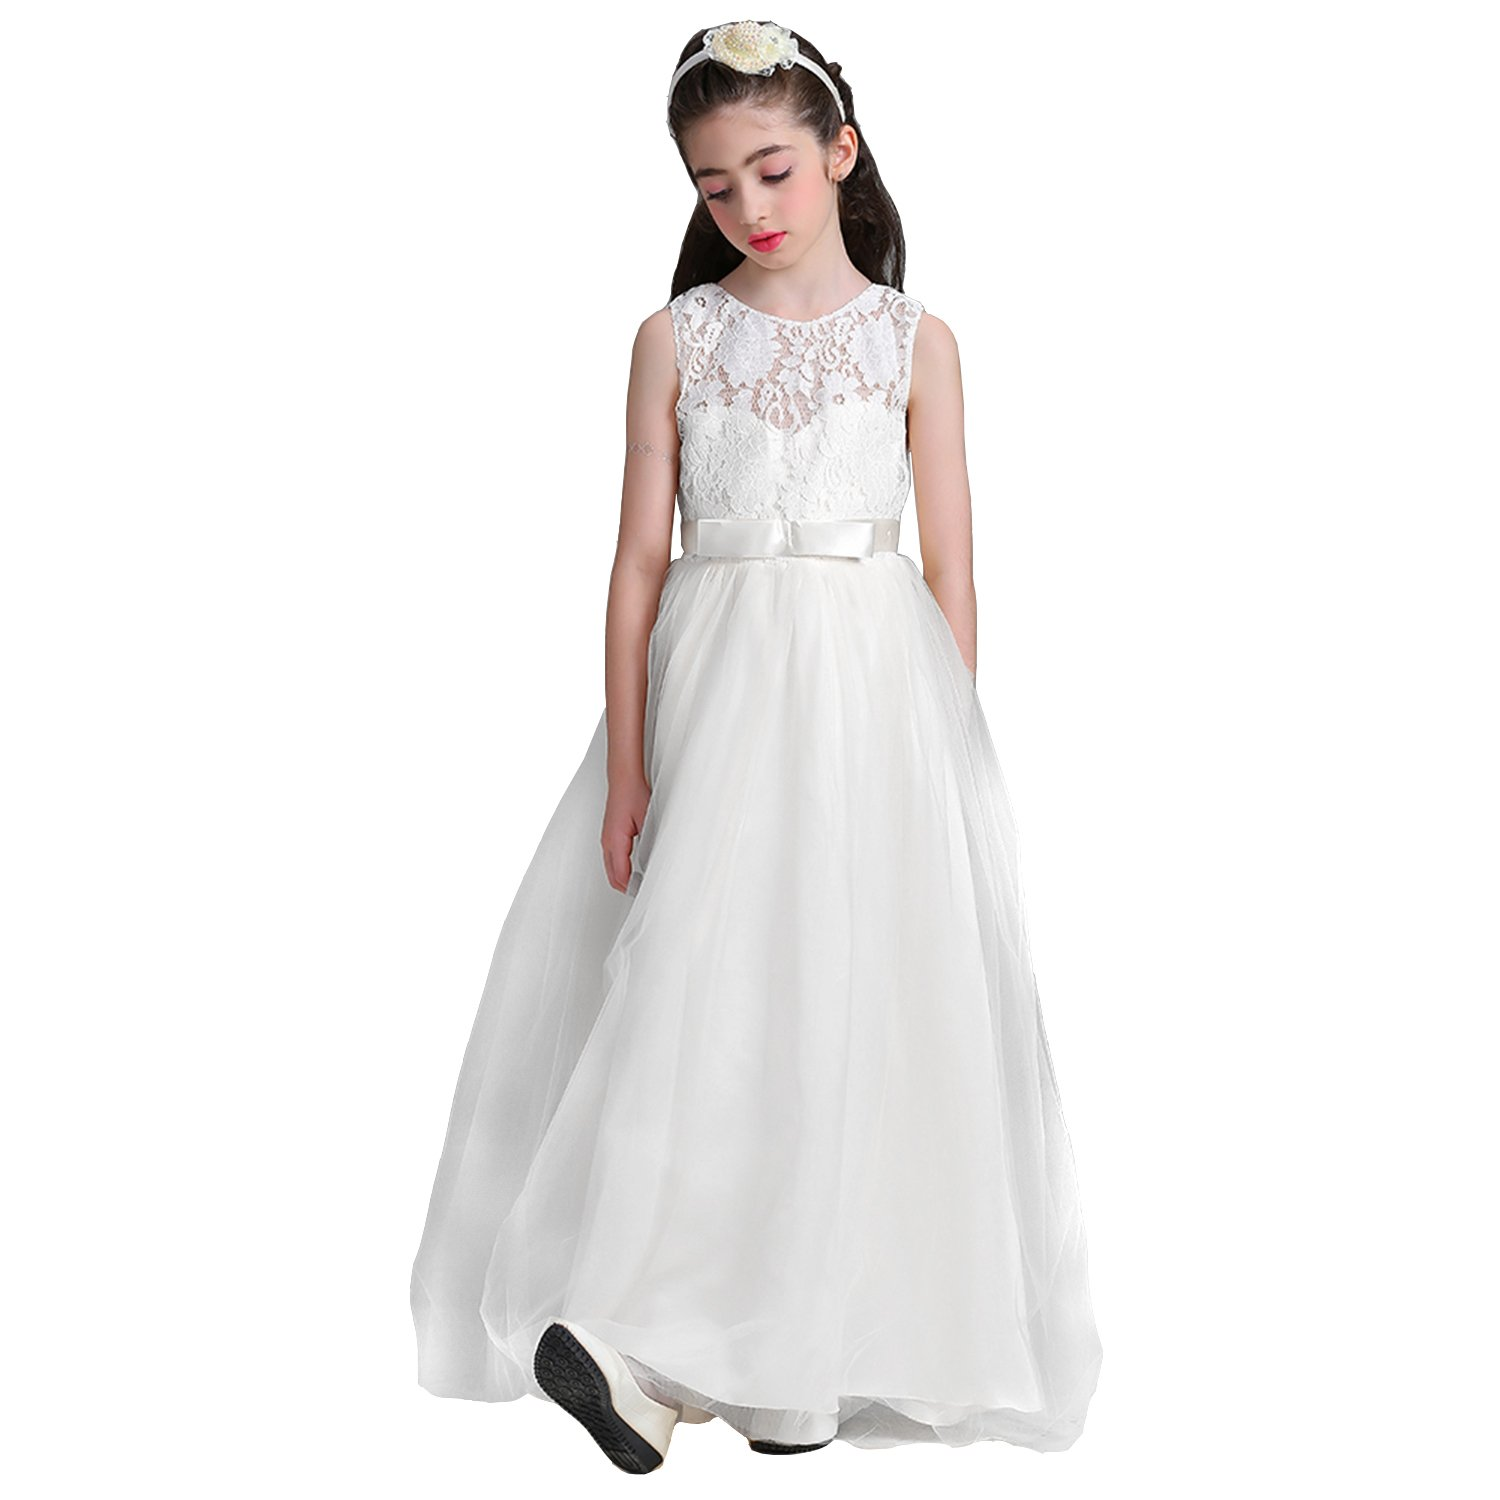 Amazon.com  Acecharming Girls Floor Length Princess Dresses Kids Sleeveless Wedding  Party Prom Ball Gowns Maxi Dress  Clothing 686780d93b3c